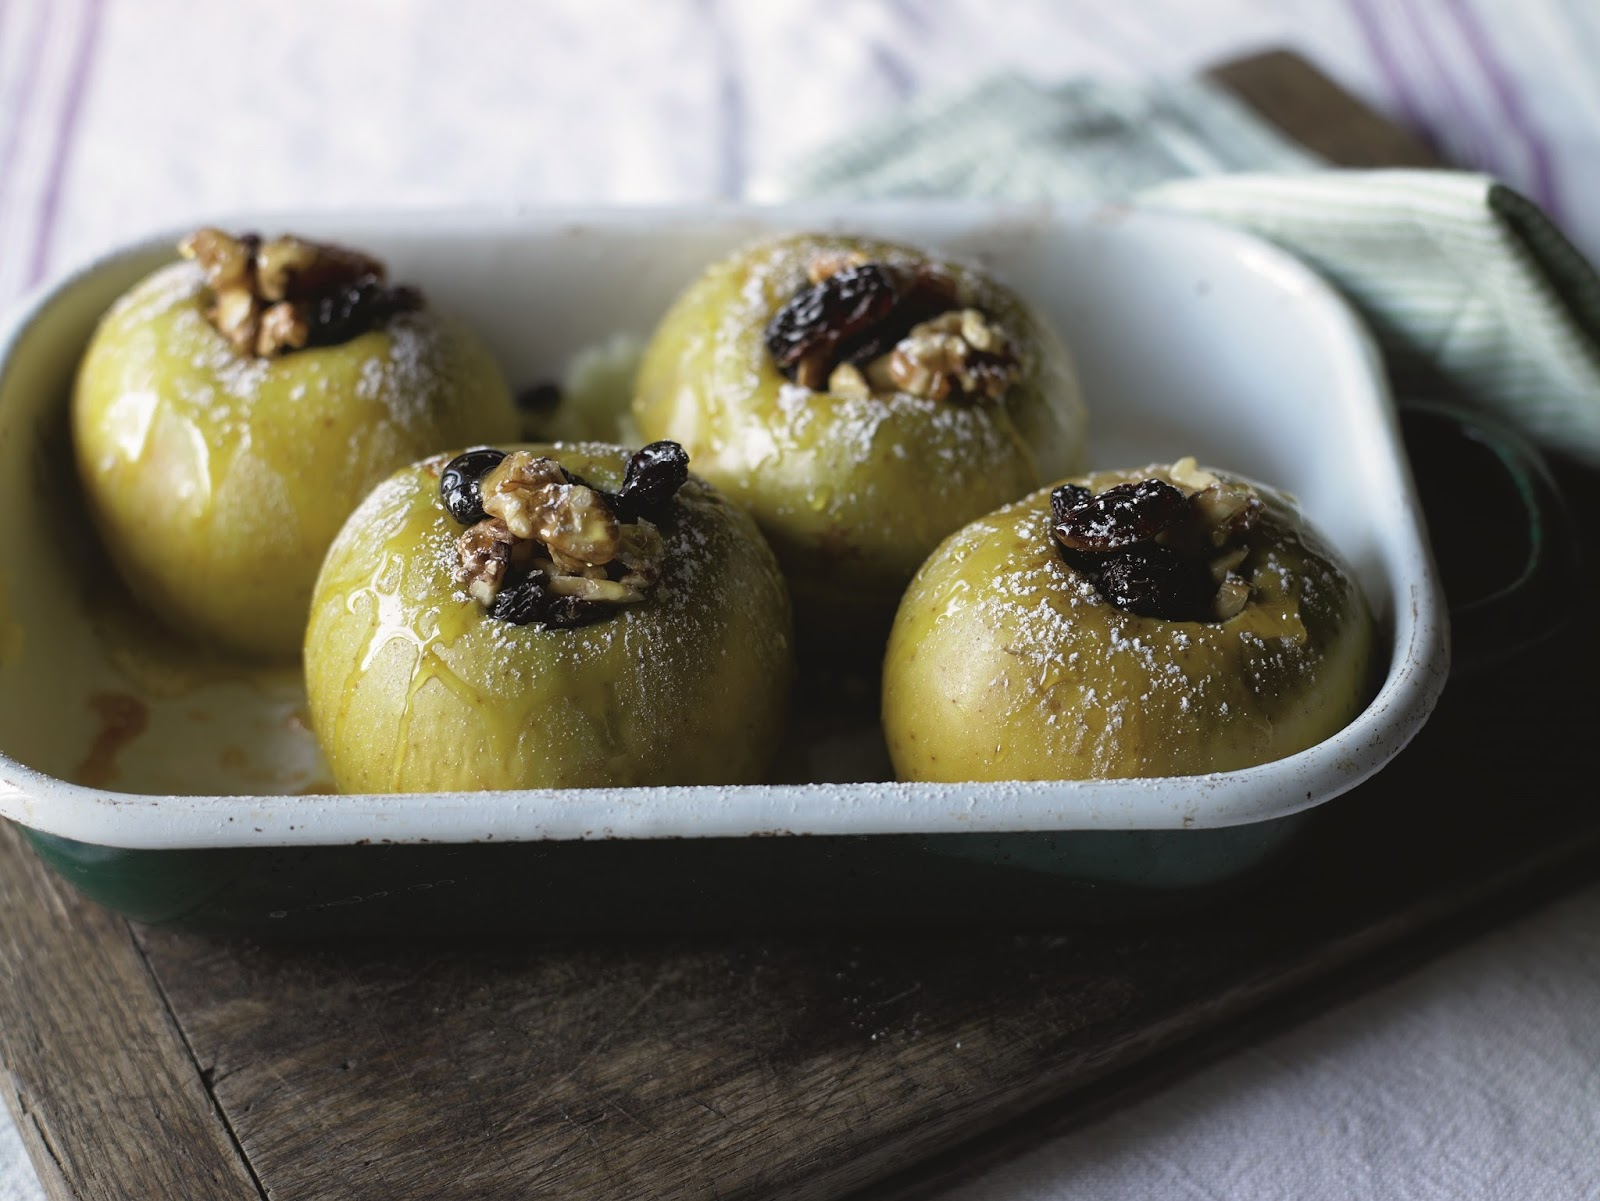 Apples Baked With Fruit And Nuts...